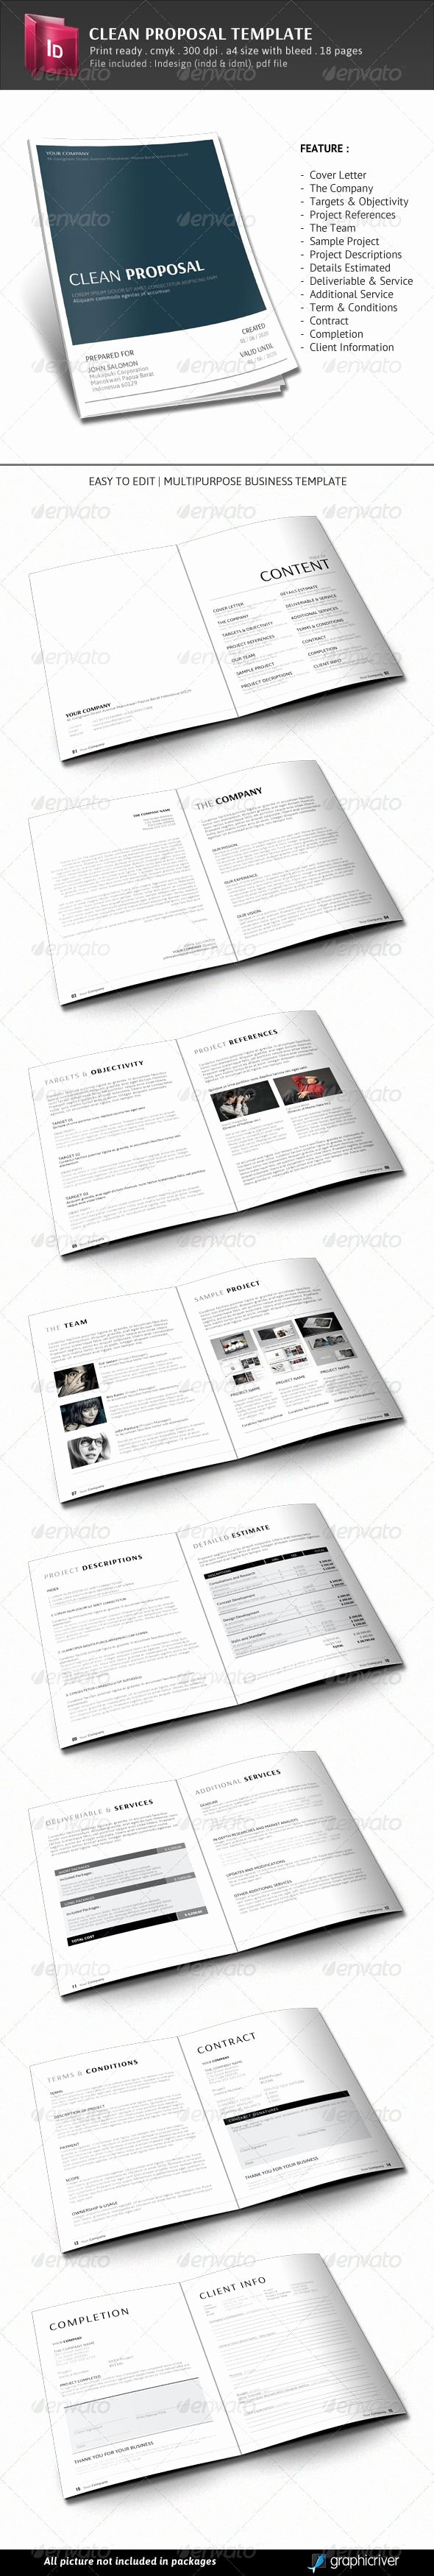 Free Proposal Template Indesign Fresh This is A Business Proposal Templete Created Using